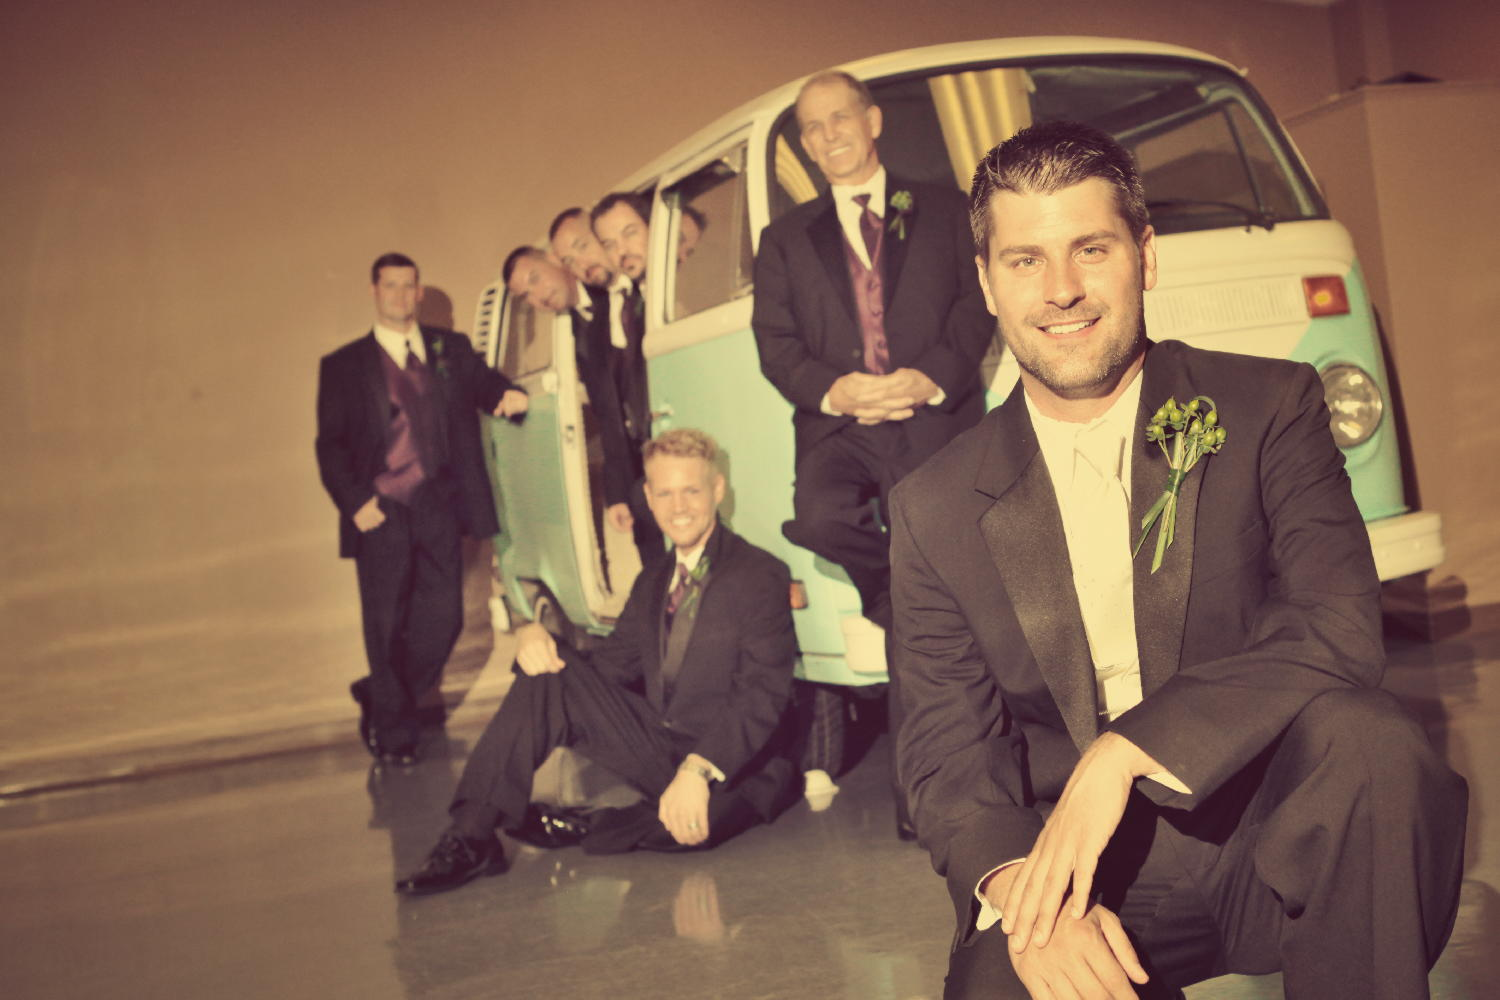 groom groomsmen vintage bus